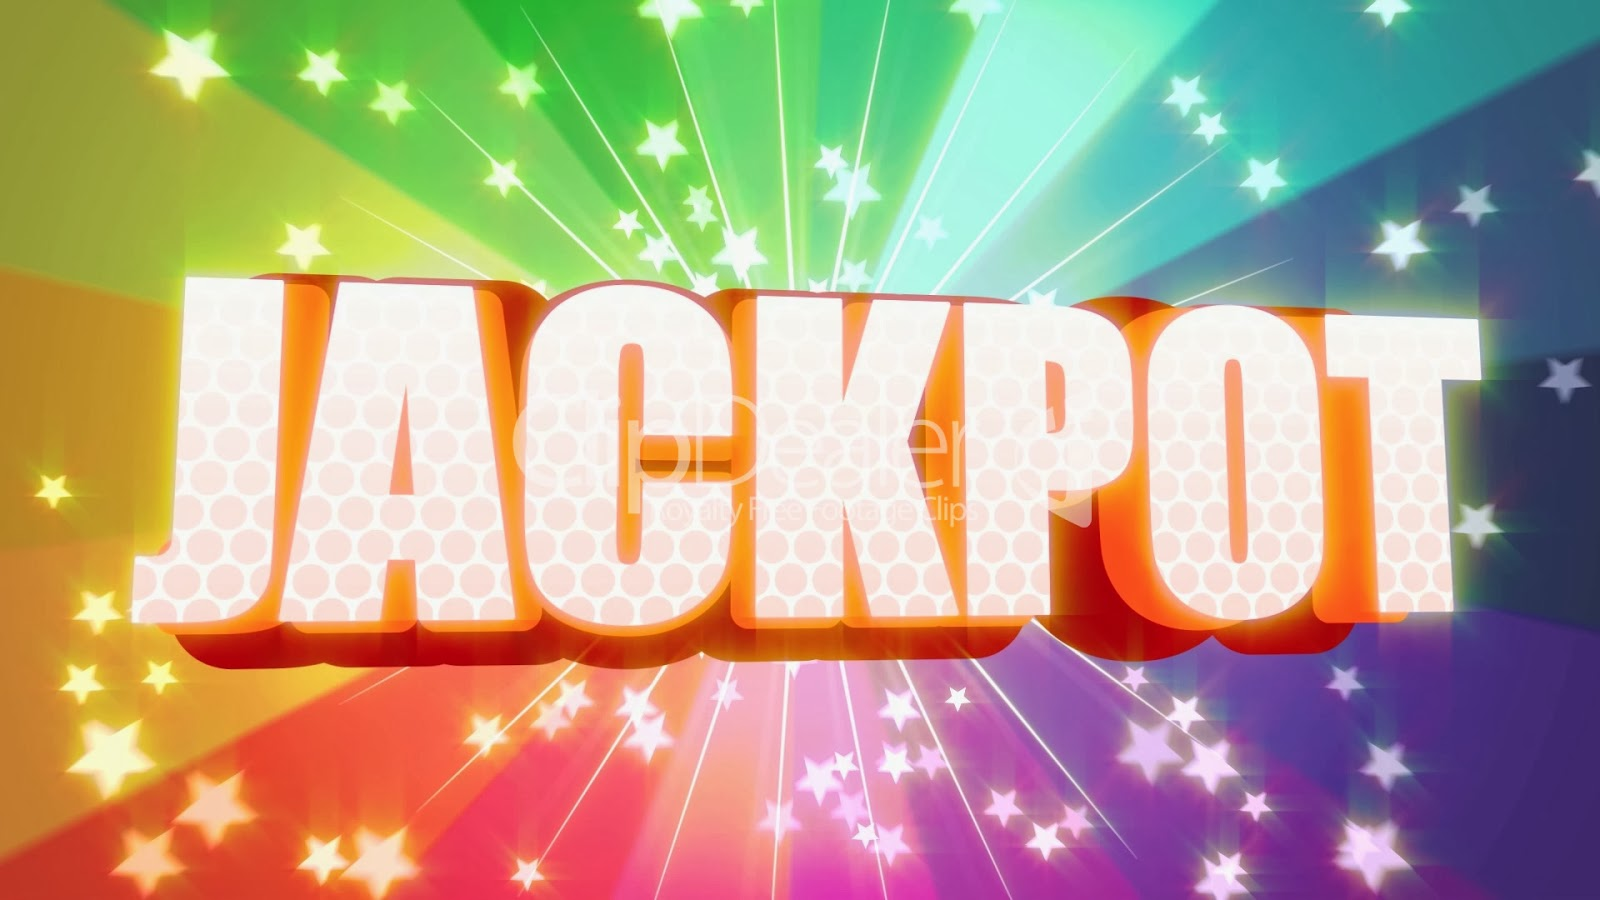 Jackpot HD Wallpapers - HD wallpapers